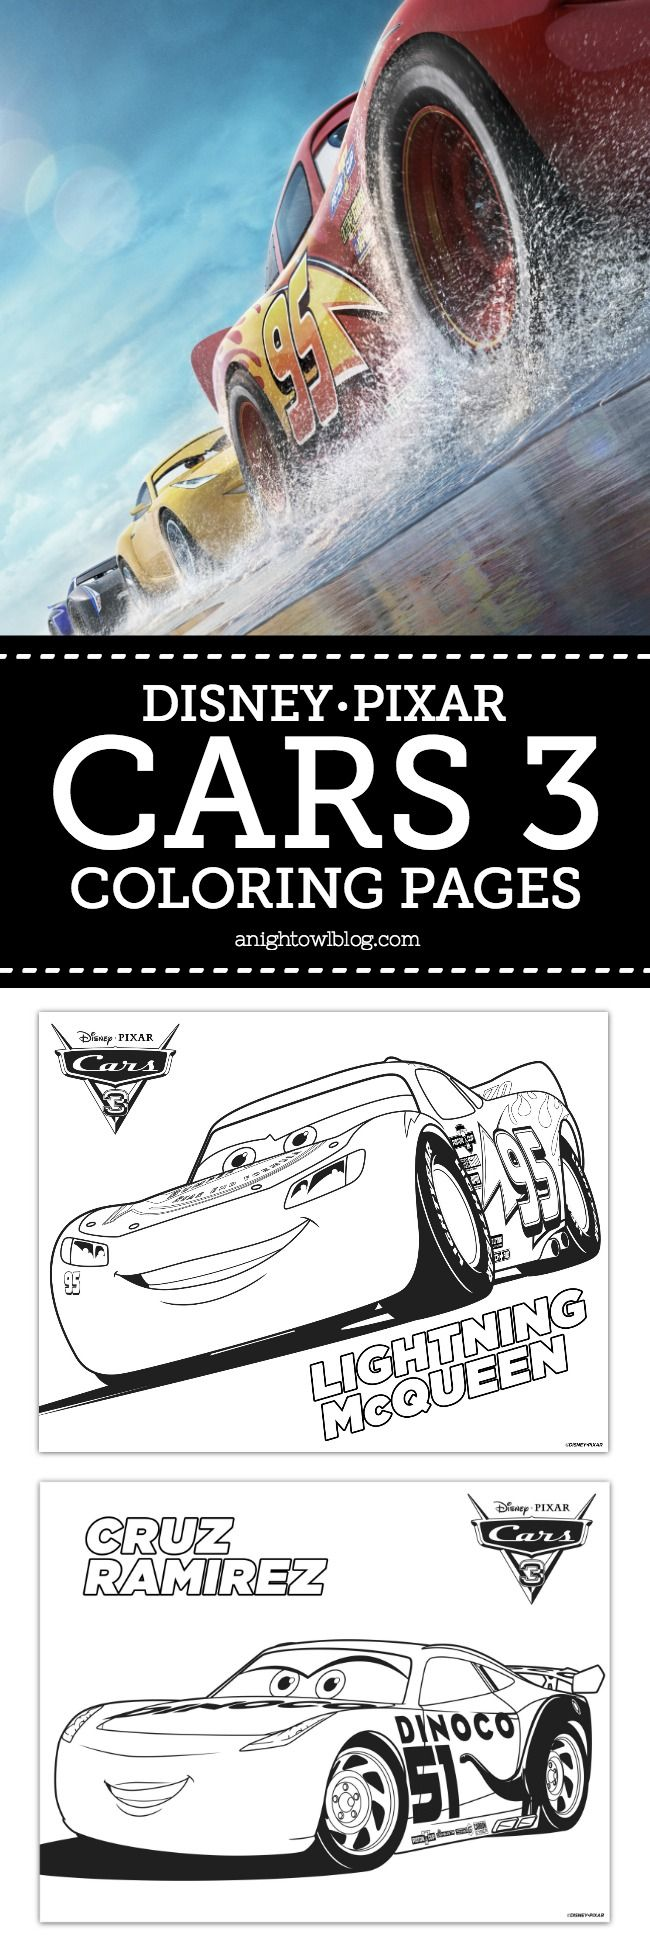 Hot off the presses! If your kids are excited about NEW Disney Pixar's Cars 3, download these FREE Disney Pixar Cars 3 Coloring Pages today!